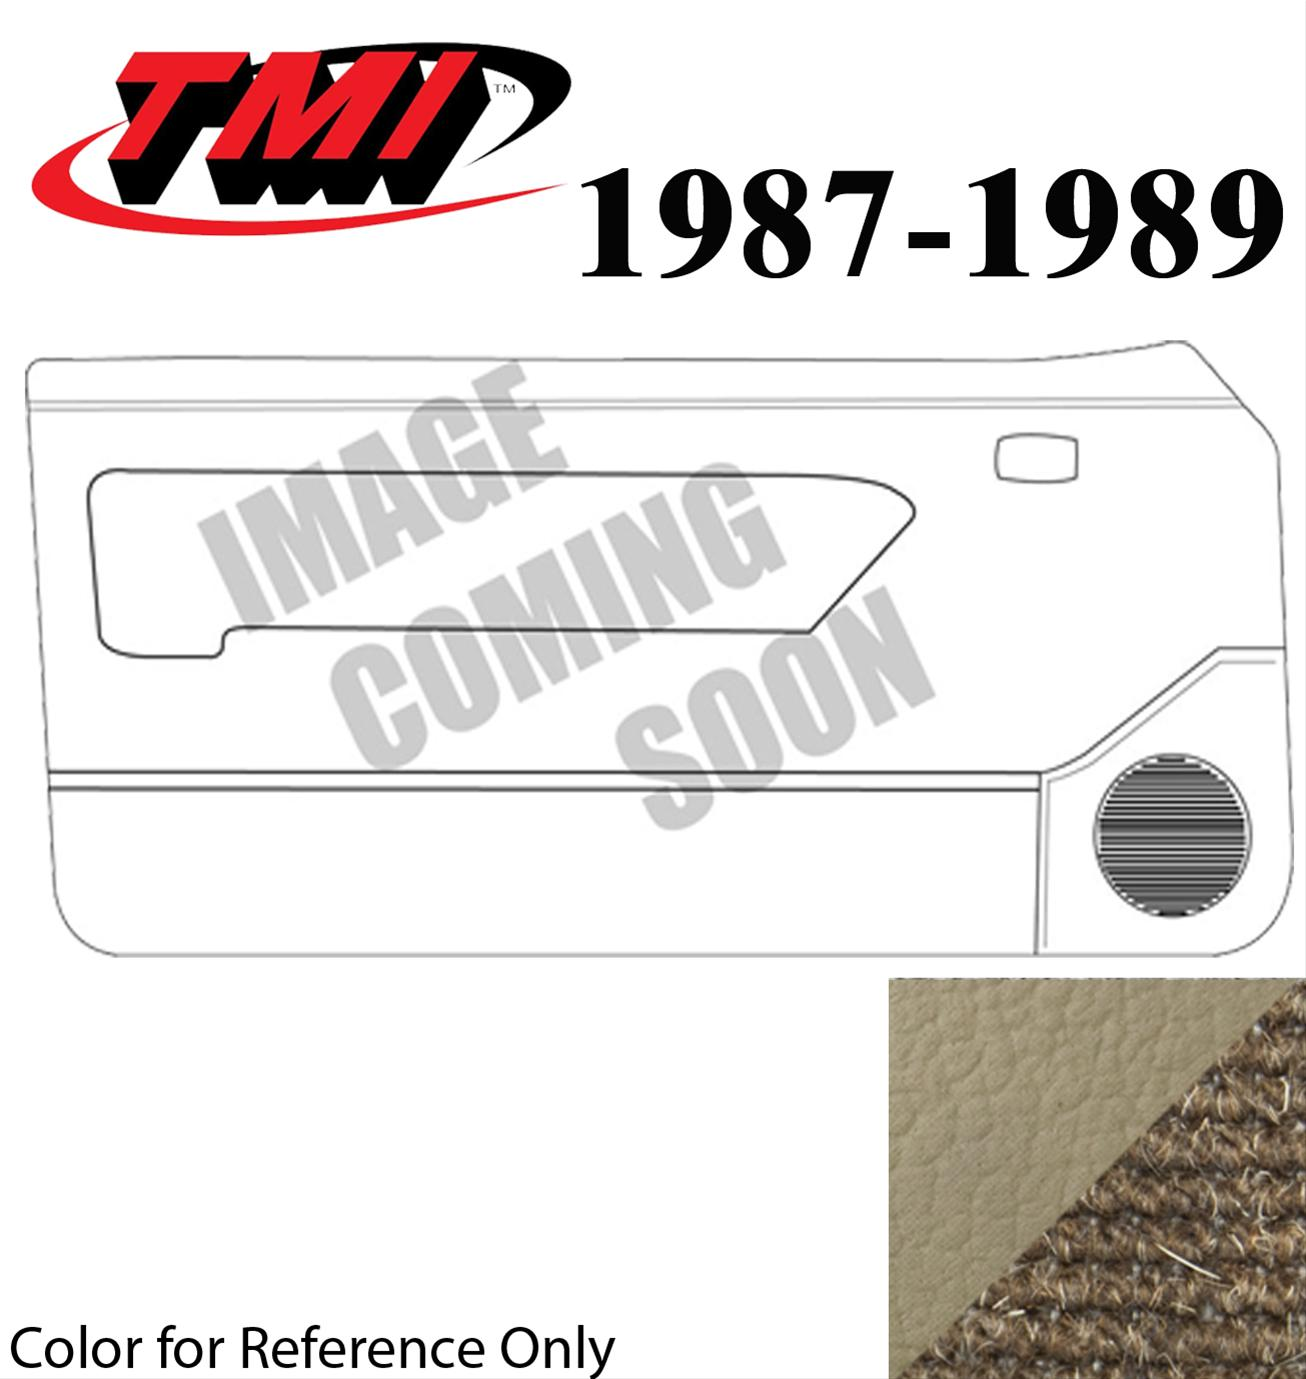 Inserts ACC 1987-1989 Ford Mustang Door Panel Replacement Carpet Factory Fit Fits: Convertible Cutpile